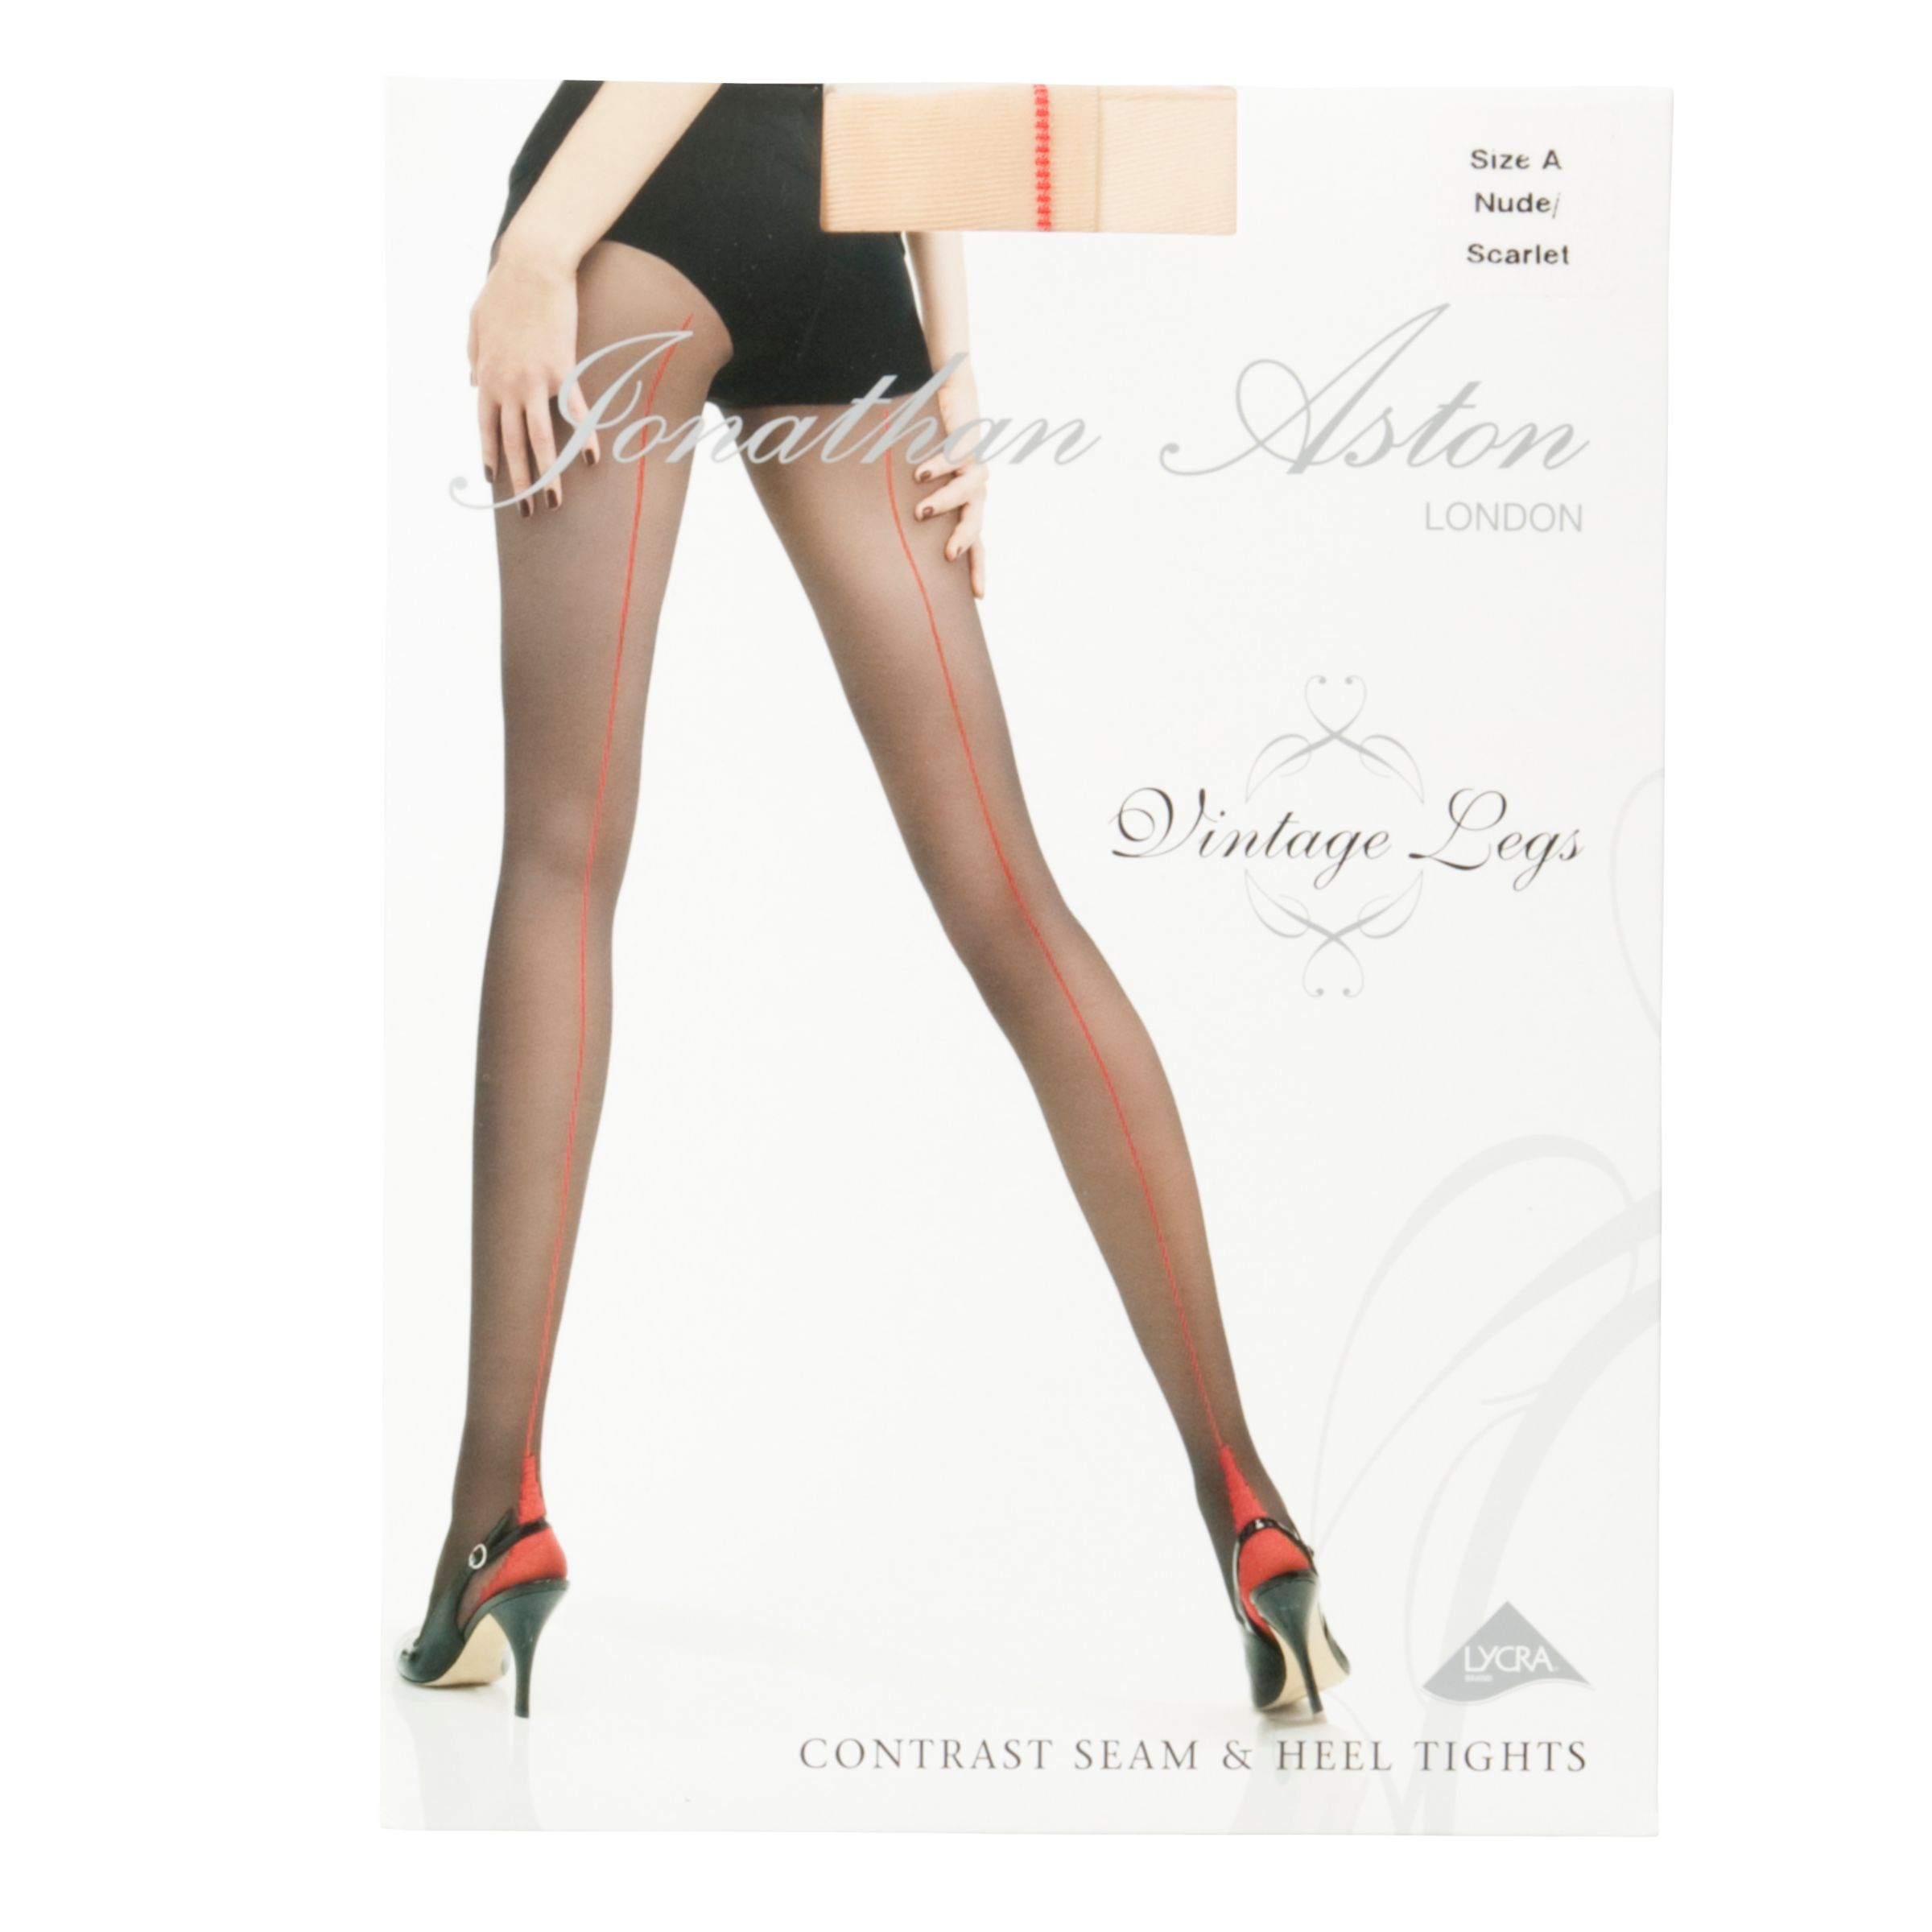 Jonathan Aston Contrast Seam and Heel Tights, Nude/Scarlet